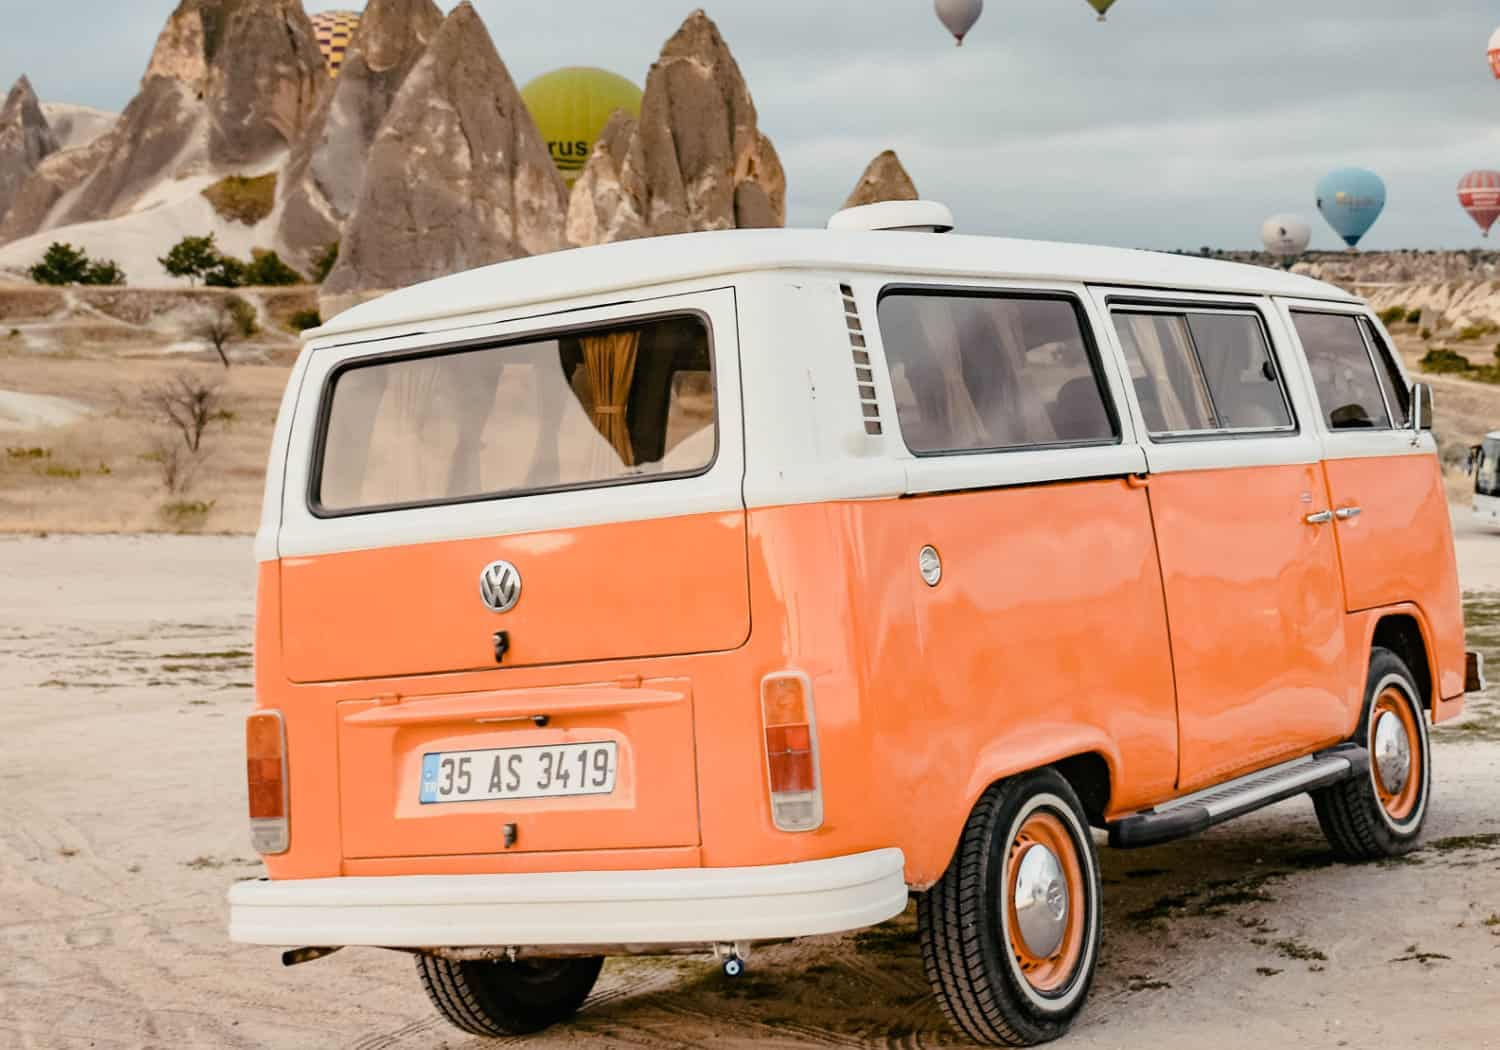 A orange Volkswagen stands on sand. In the background are rocks and hot-air-balloons.